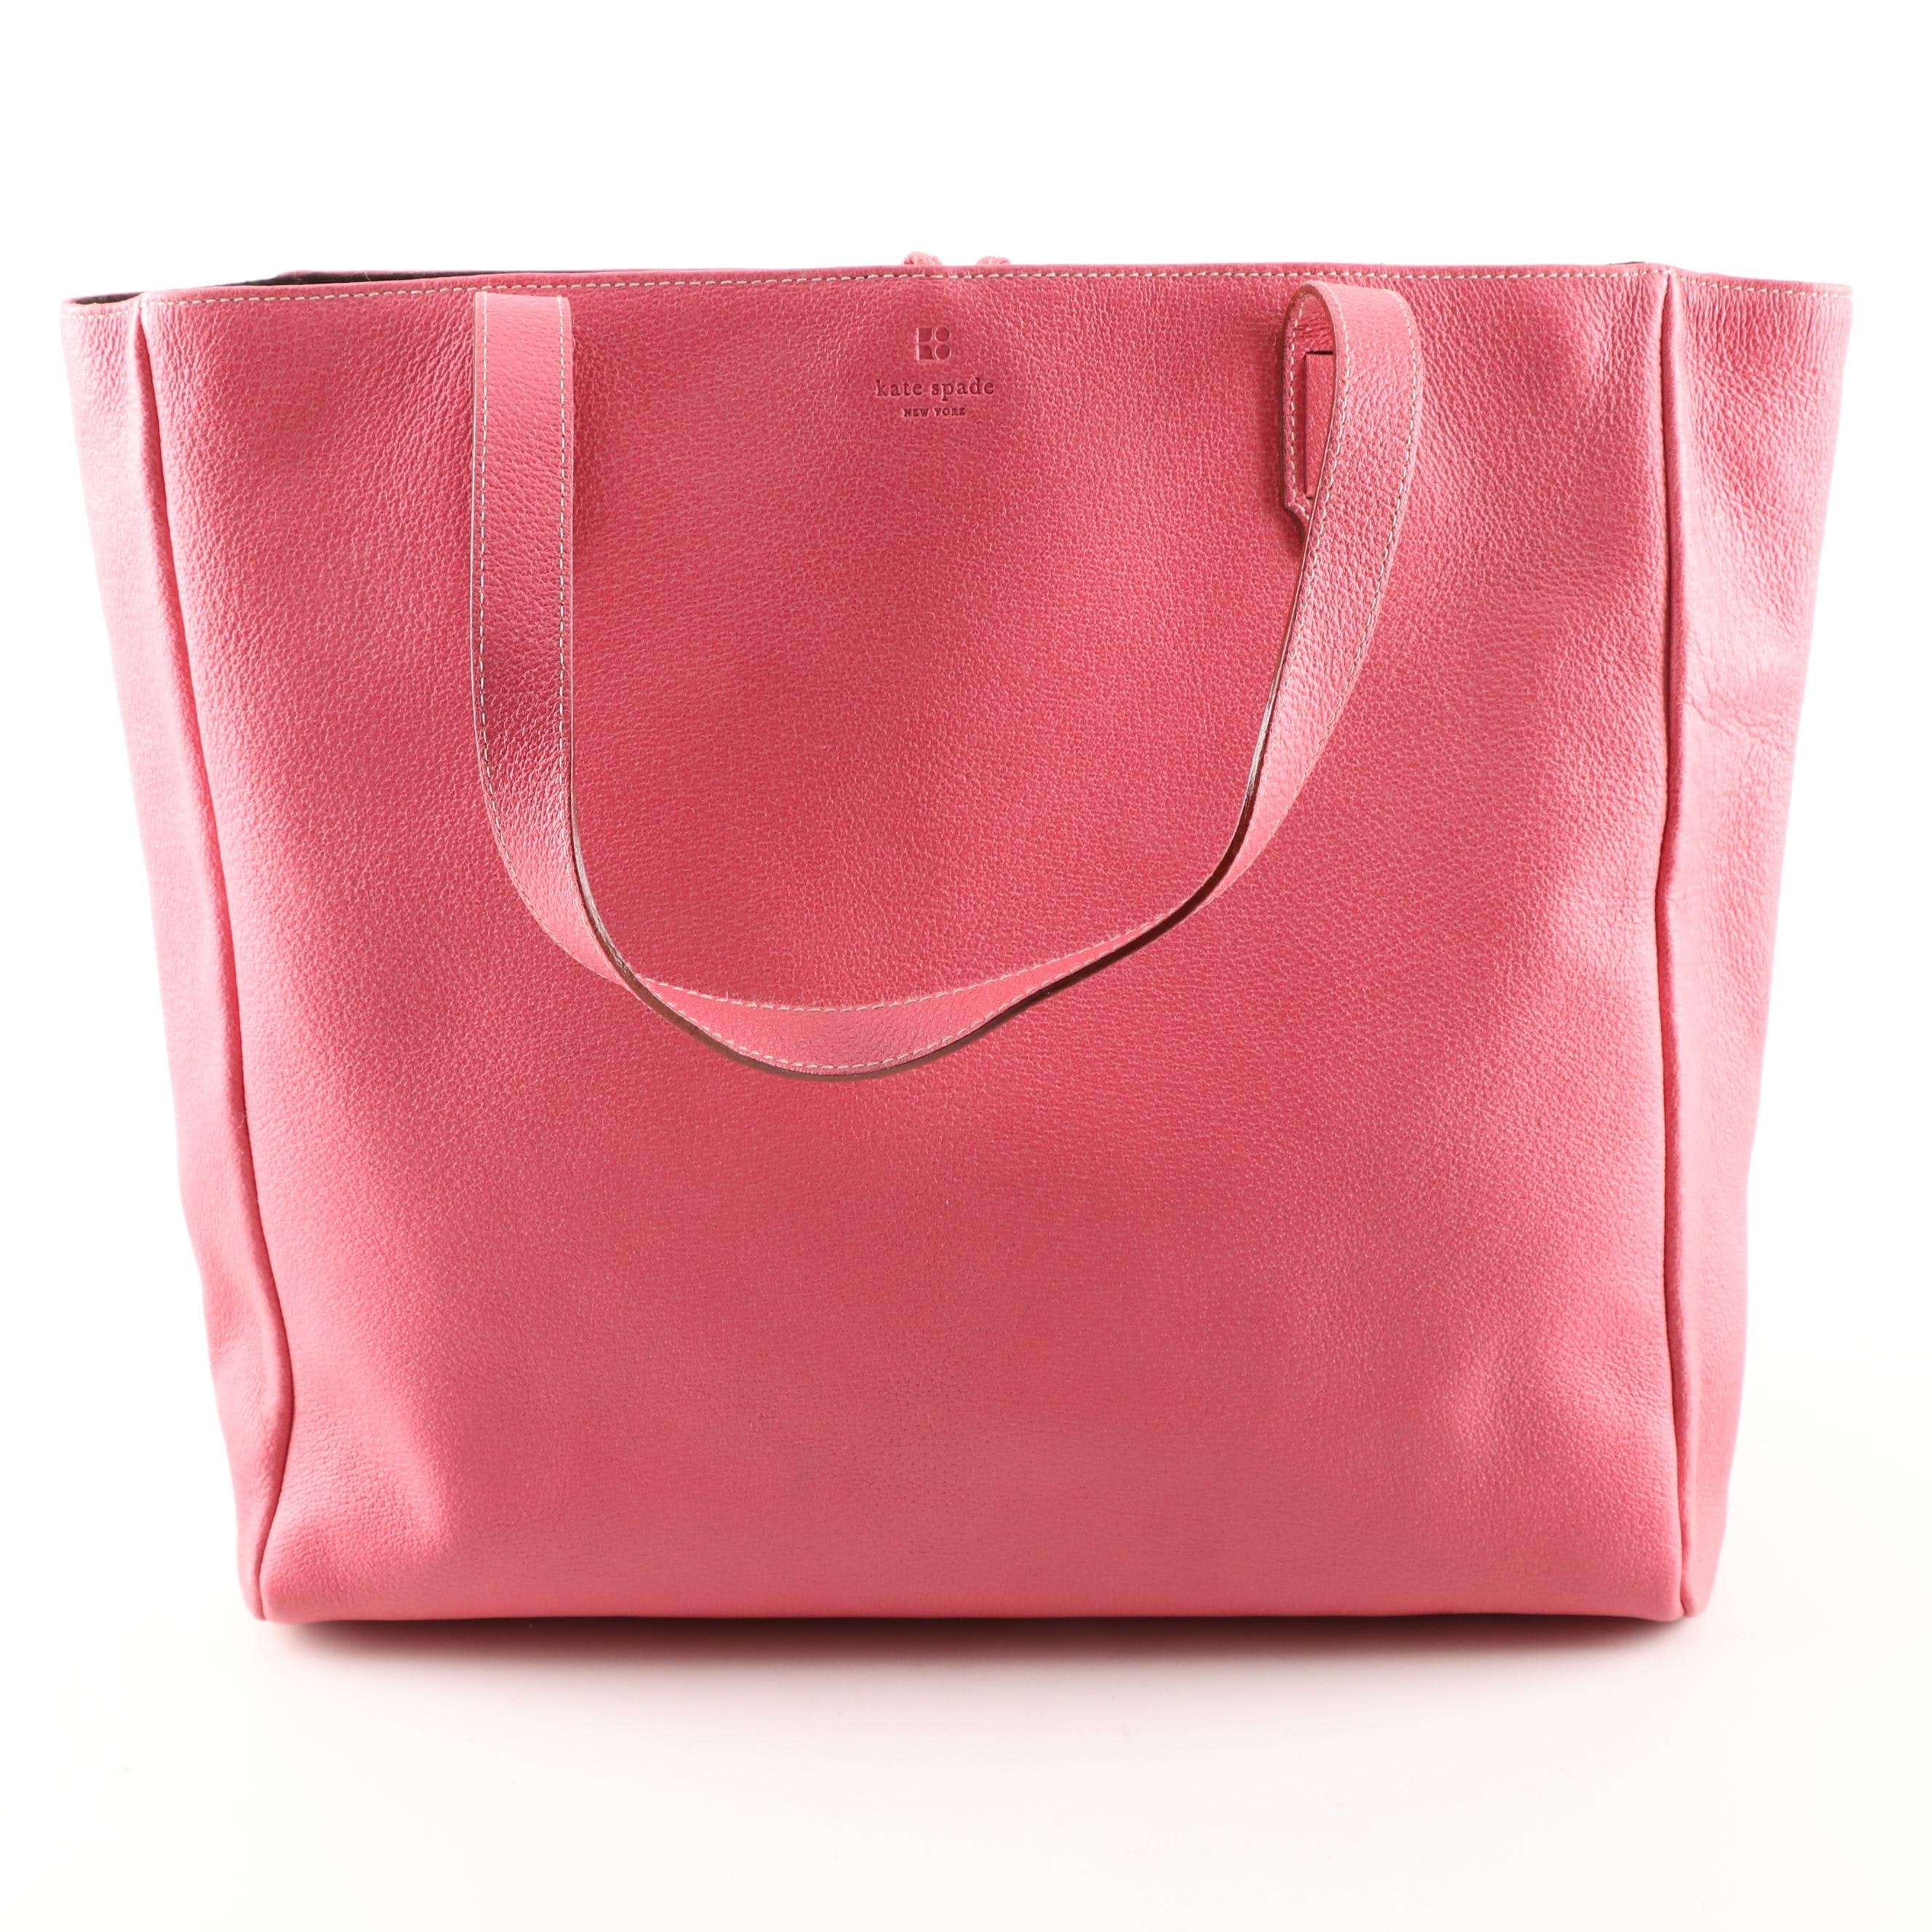 Kate Spade New York Coral Pink Pebbled Leather Tote Bag